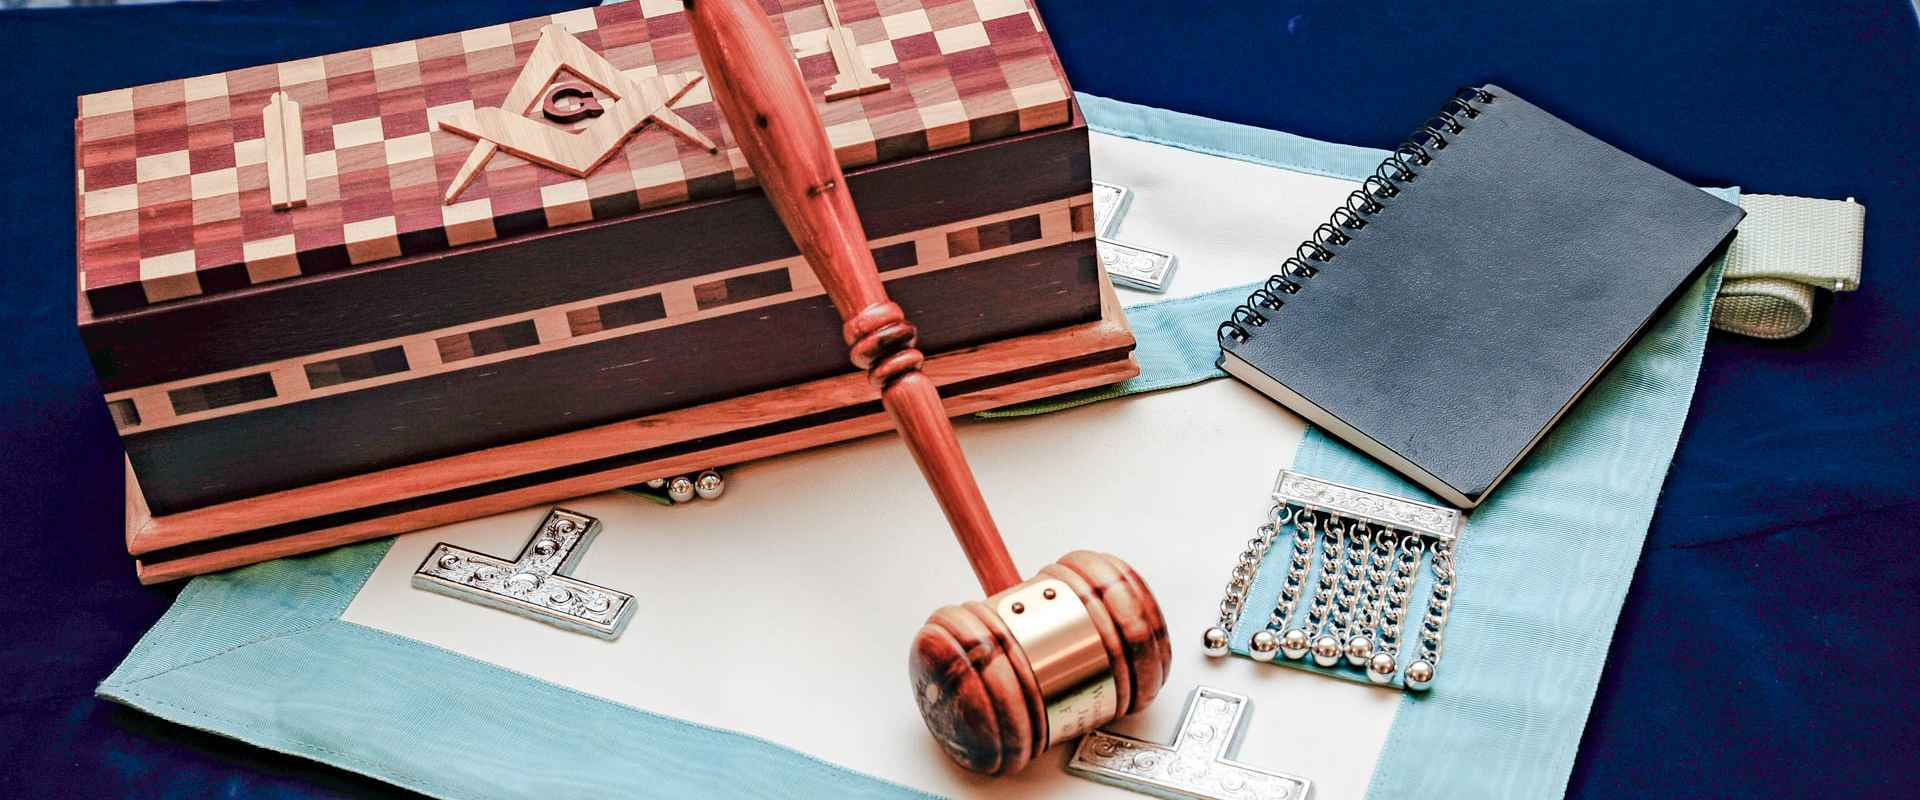 a photograph of the masters gavel, apron and ritual book.